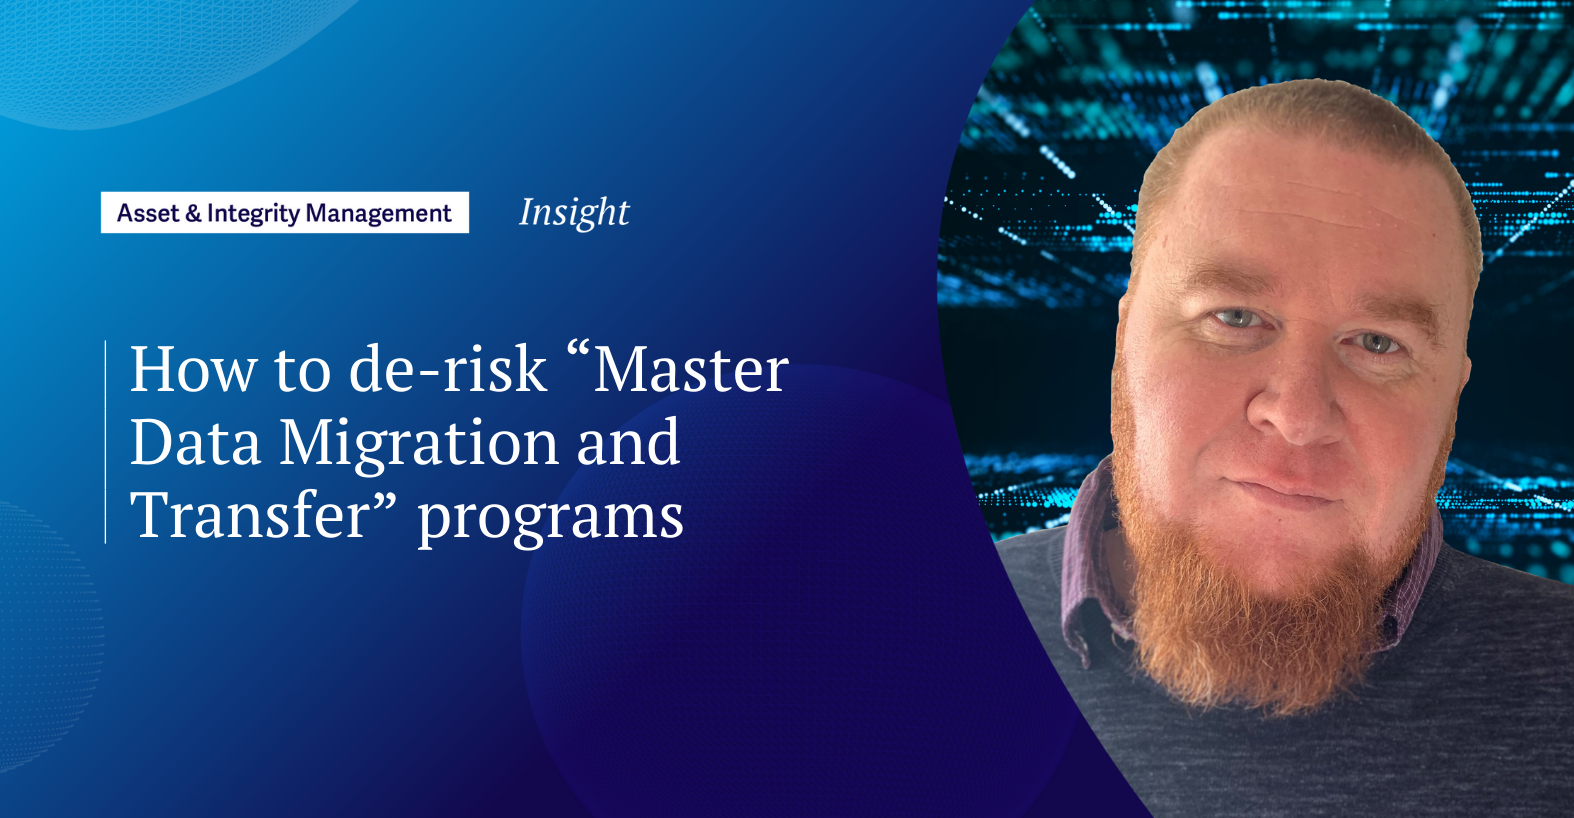 "How to de-risk ""Master Data Migration and Transfer"" programs"